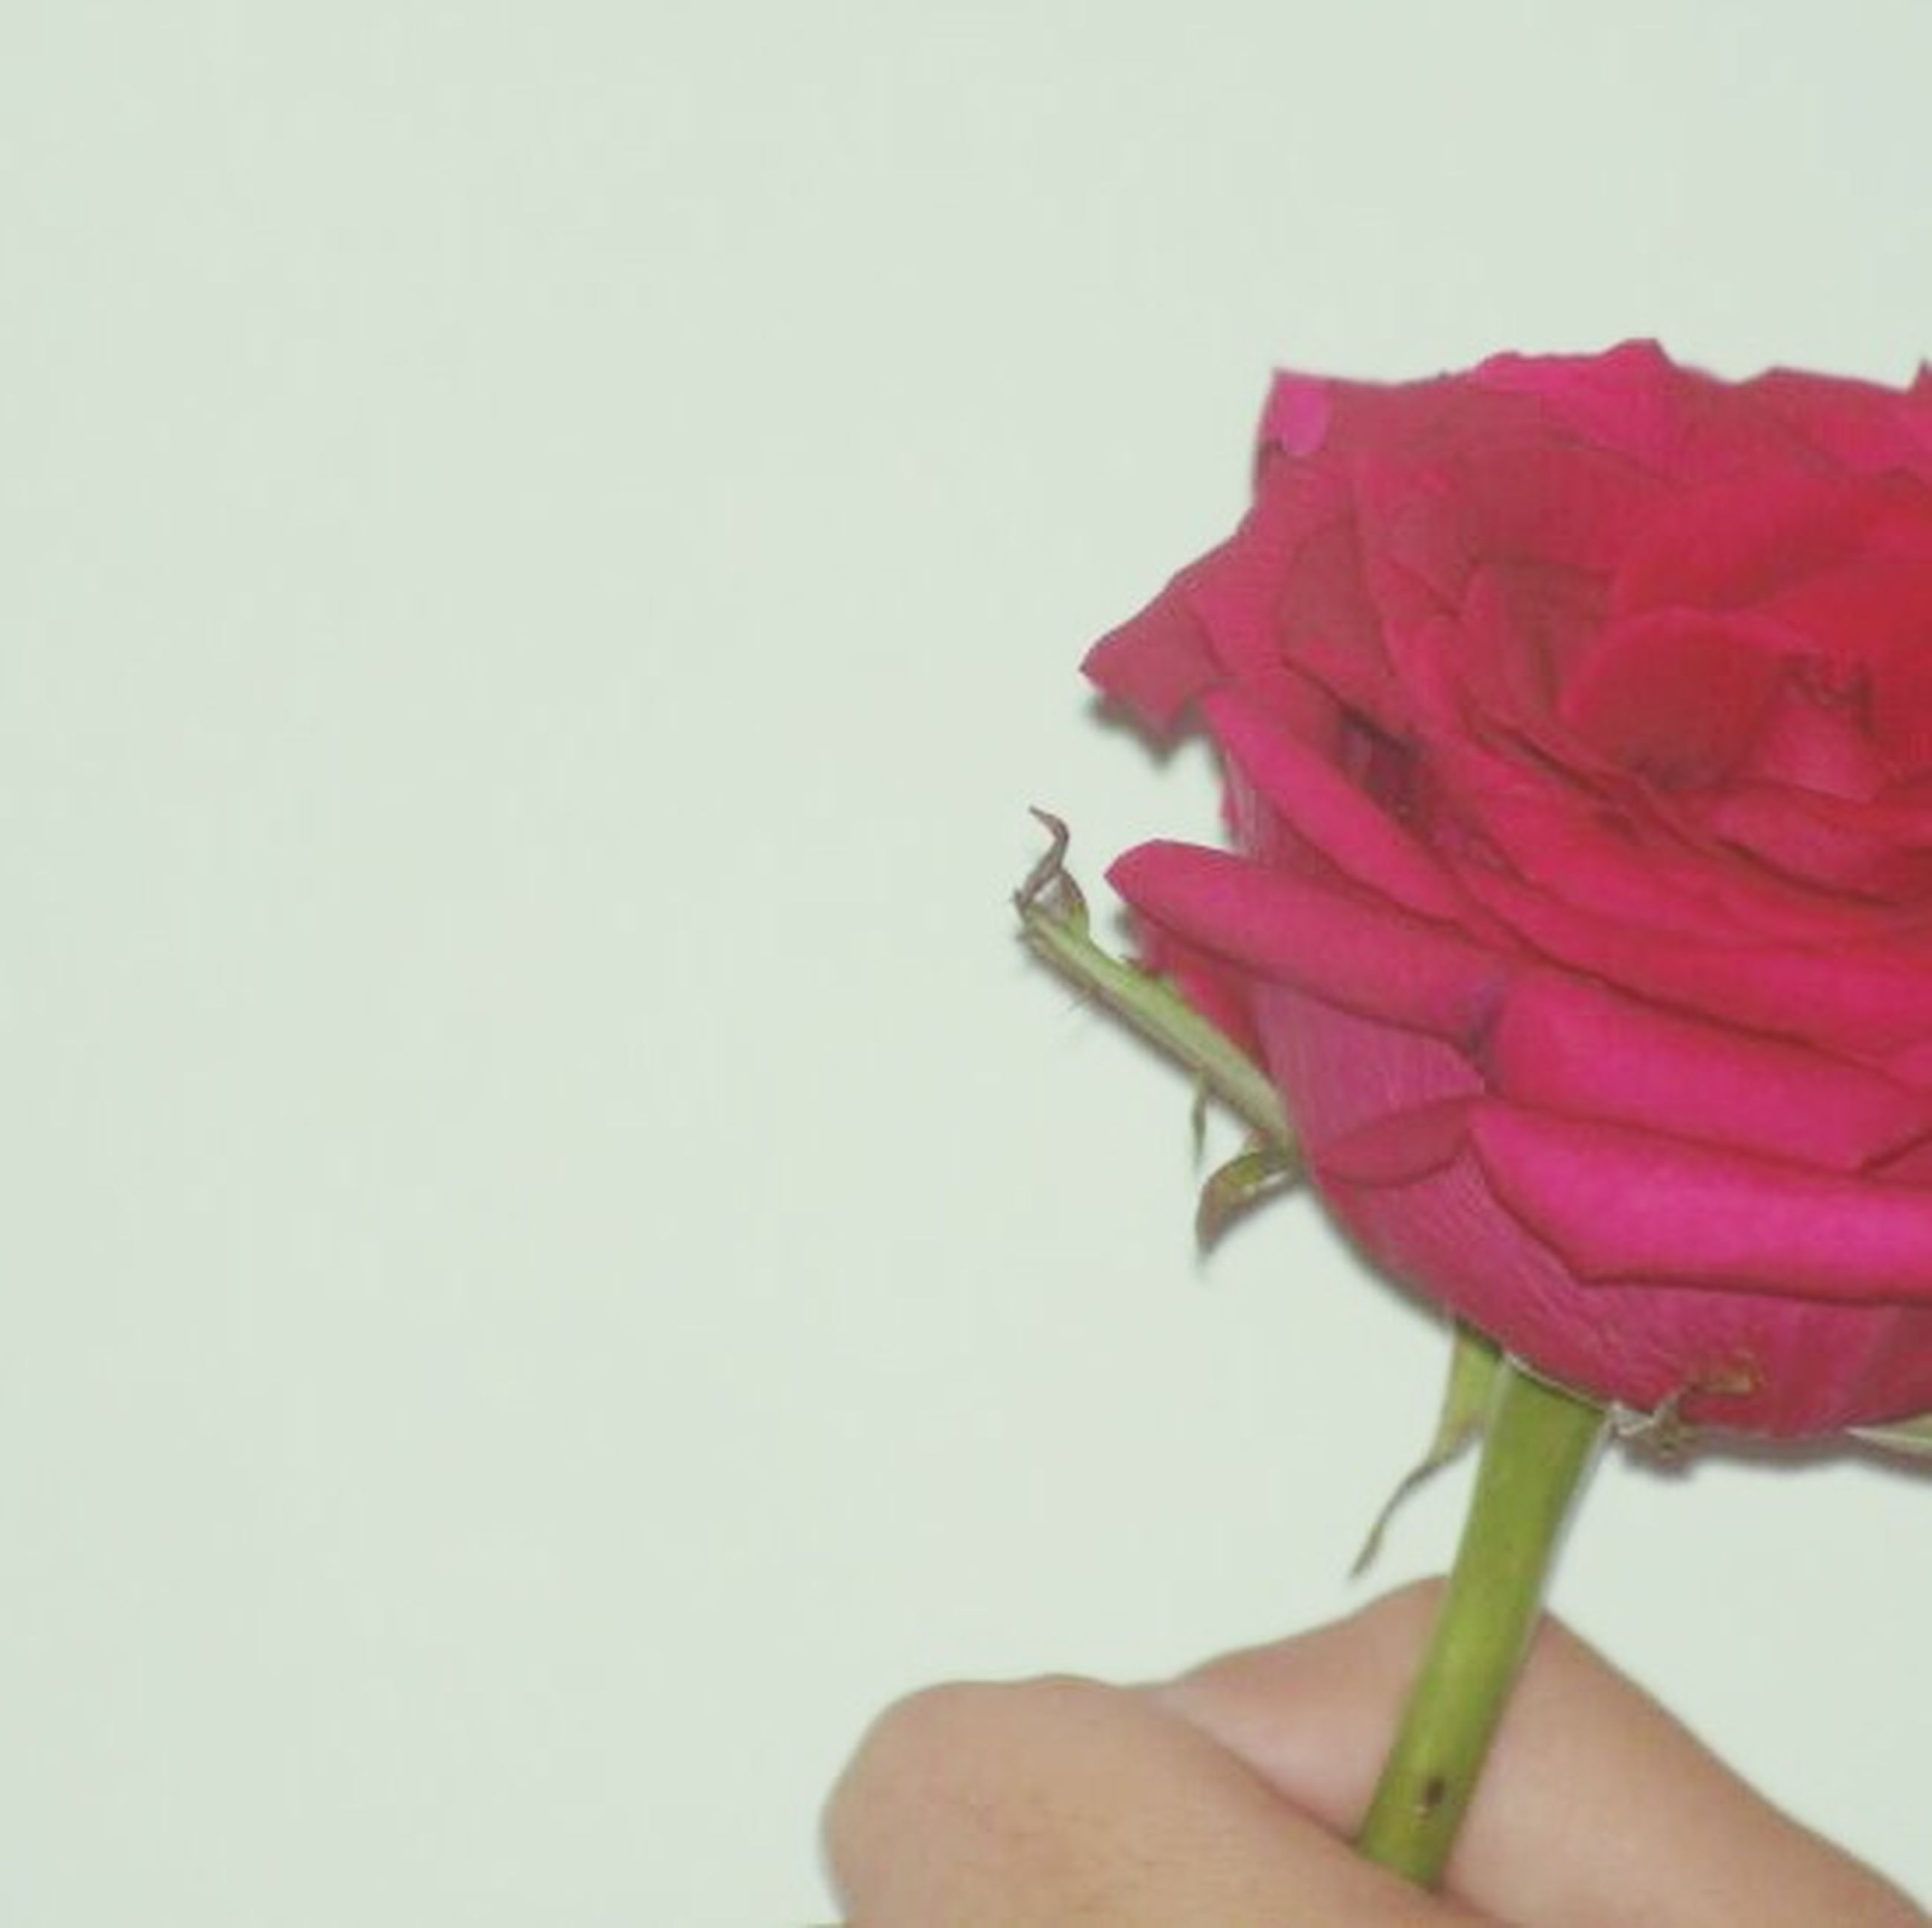 person, white background, cropped, studio shot, part of, holding, red, close-up, copy space, human finger, freshness, unrecognizable person, indoors, flower, personal perspective, focus on foreground, rose